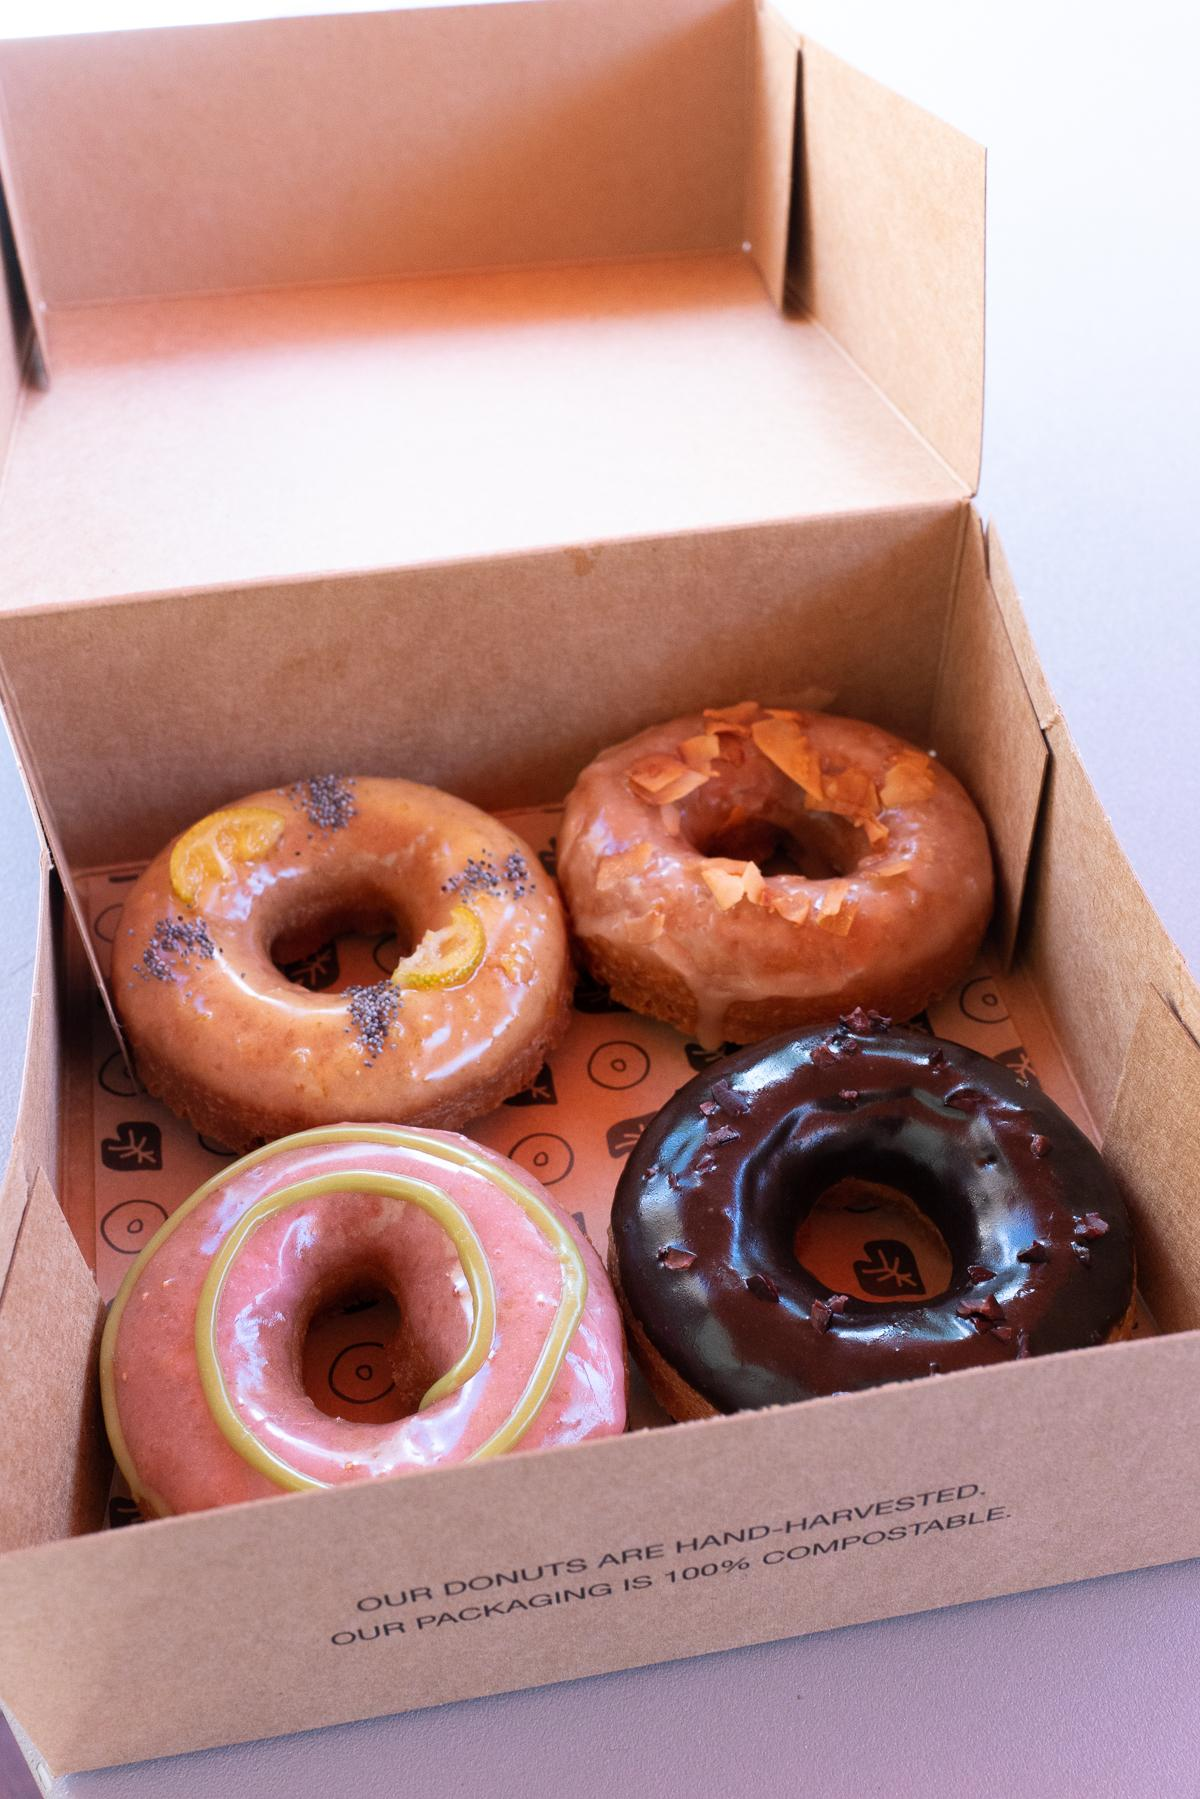 Opened box with four donuts from Holey Grail Donuts. The donut flavors are strawberry-green tea, Kauai chocolate and cacao nibs, maple and smoked coconut, and poppyseed and kumquats.